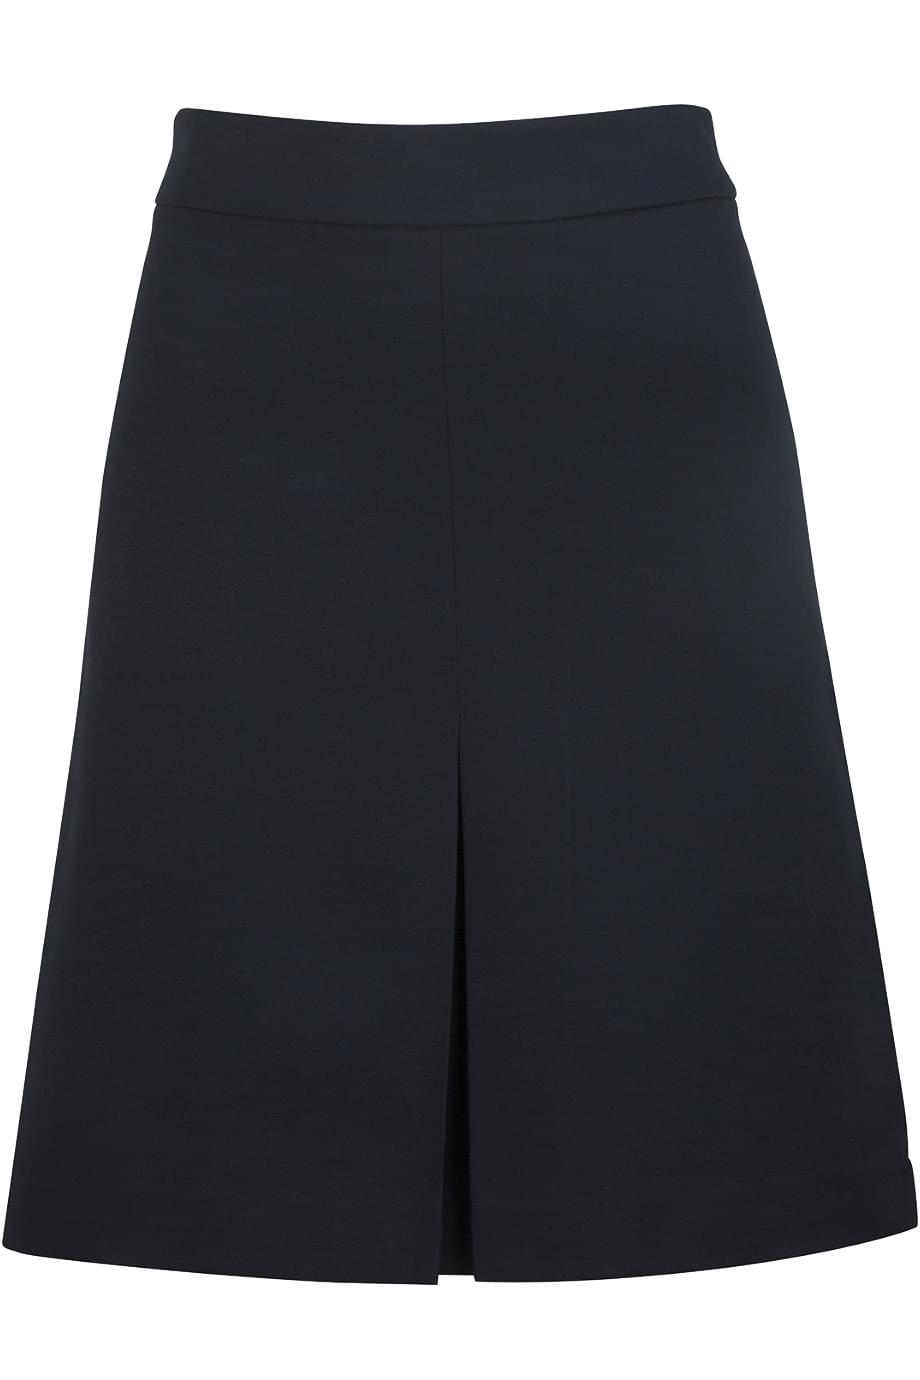 LADIES' A-LINE SKIRT WITH SYNERGY FABRIC